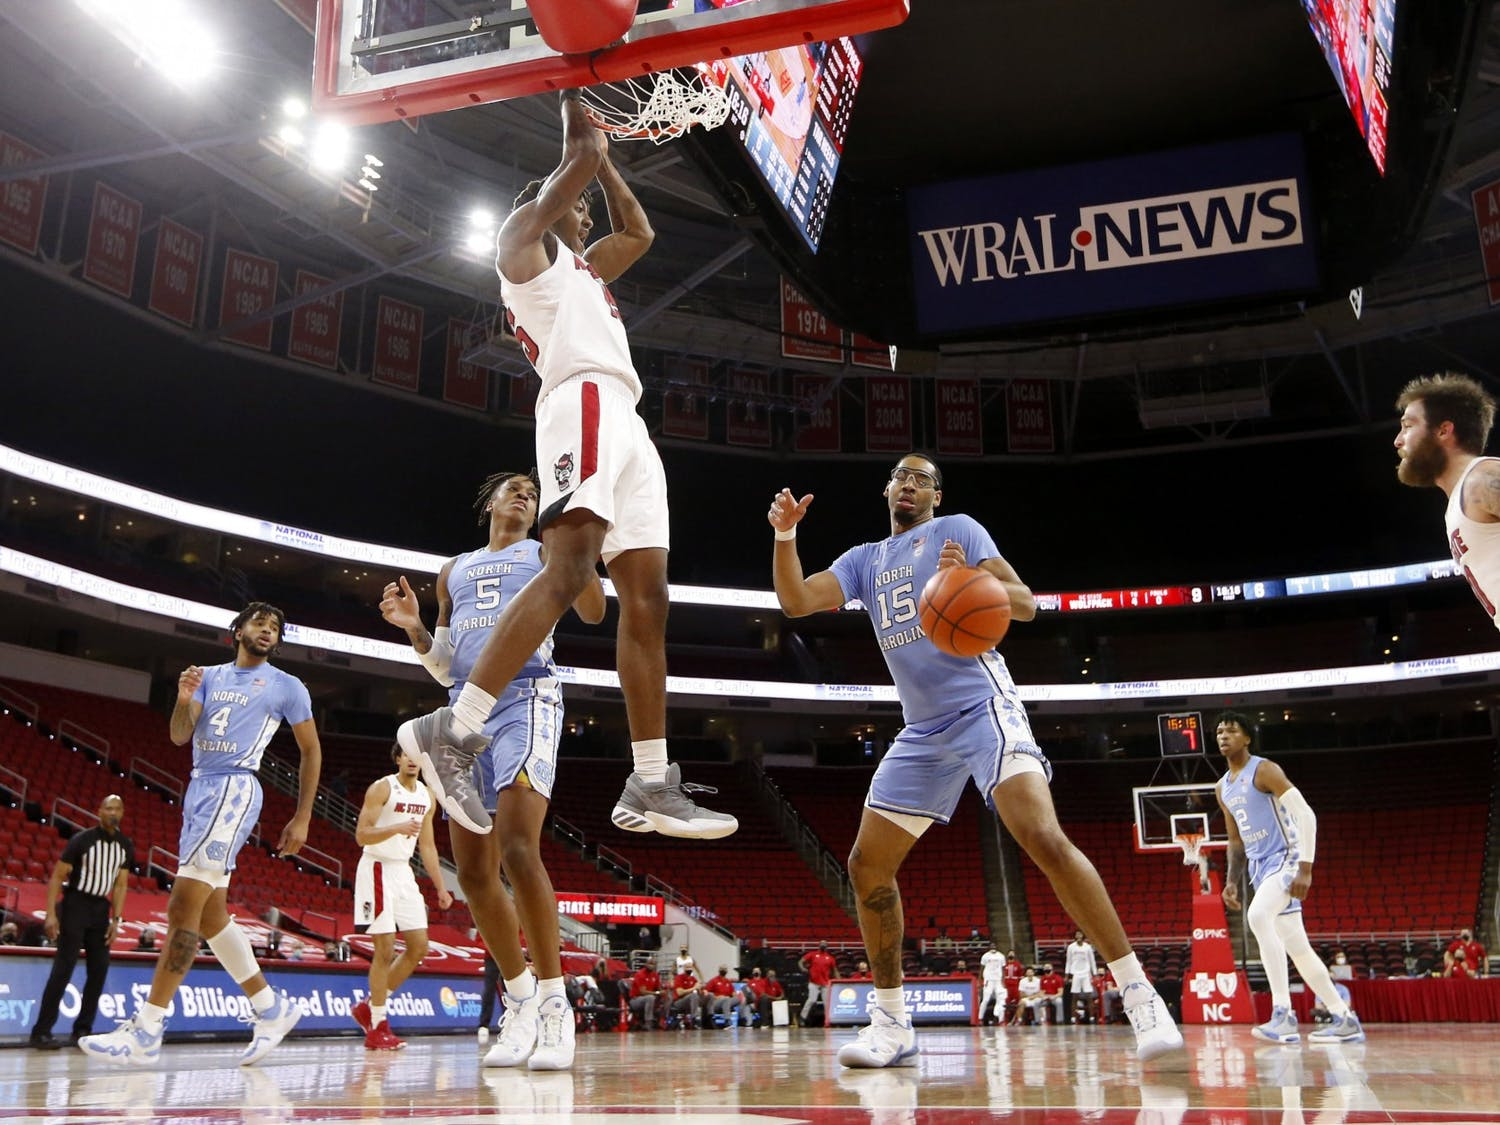 N.C. State's Manny Bates (15) slams in two during N.C. State's 79-76 victory over UNC at PNC Arena in Raleigh, N.C., Tuesday, December 22, 2020. Photo courtesy of Ethan Hyman.